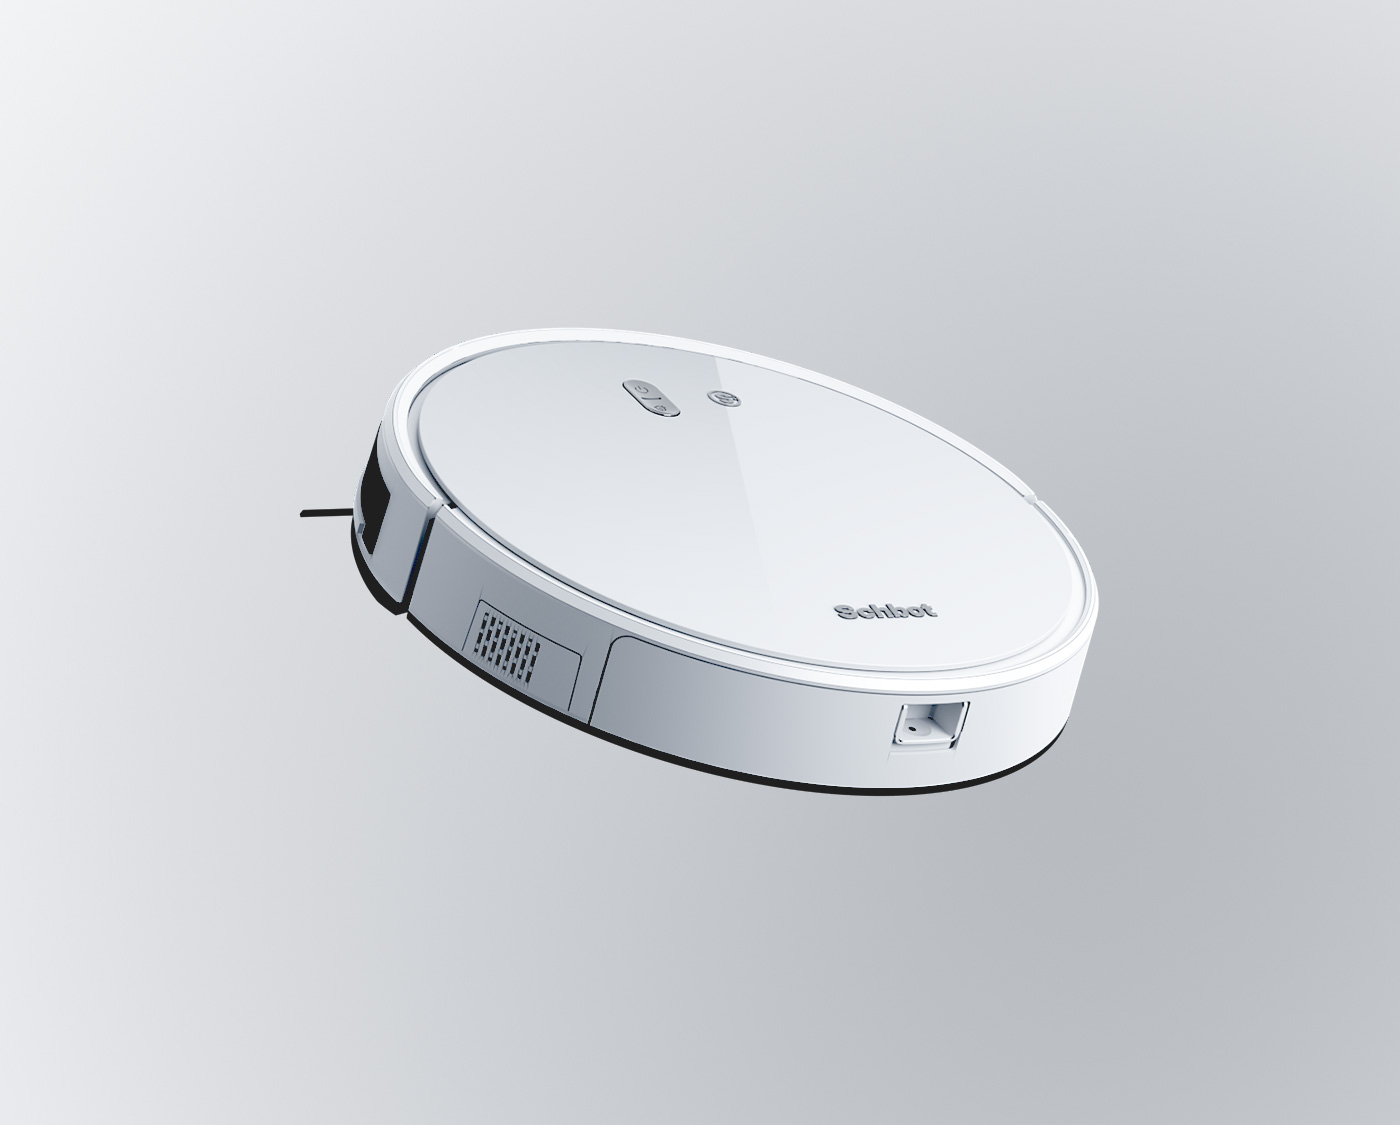 product rendering and 3d visualization schbot vacuum cleaner 8